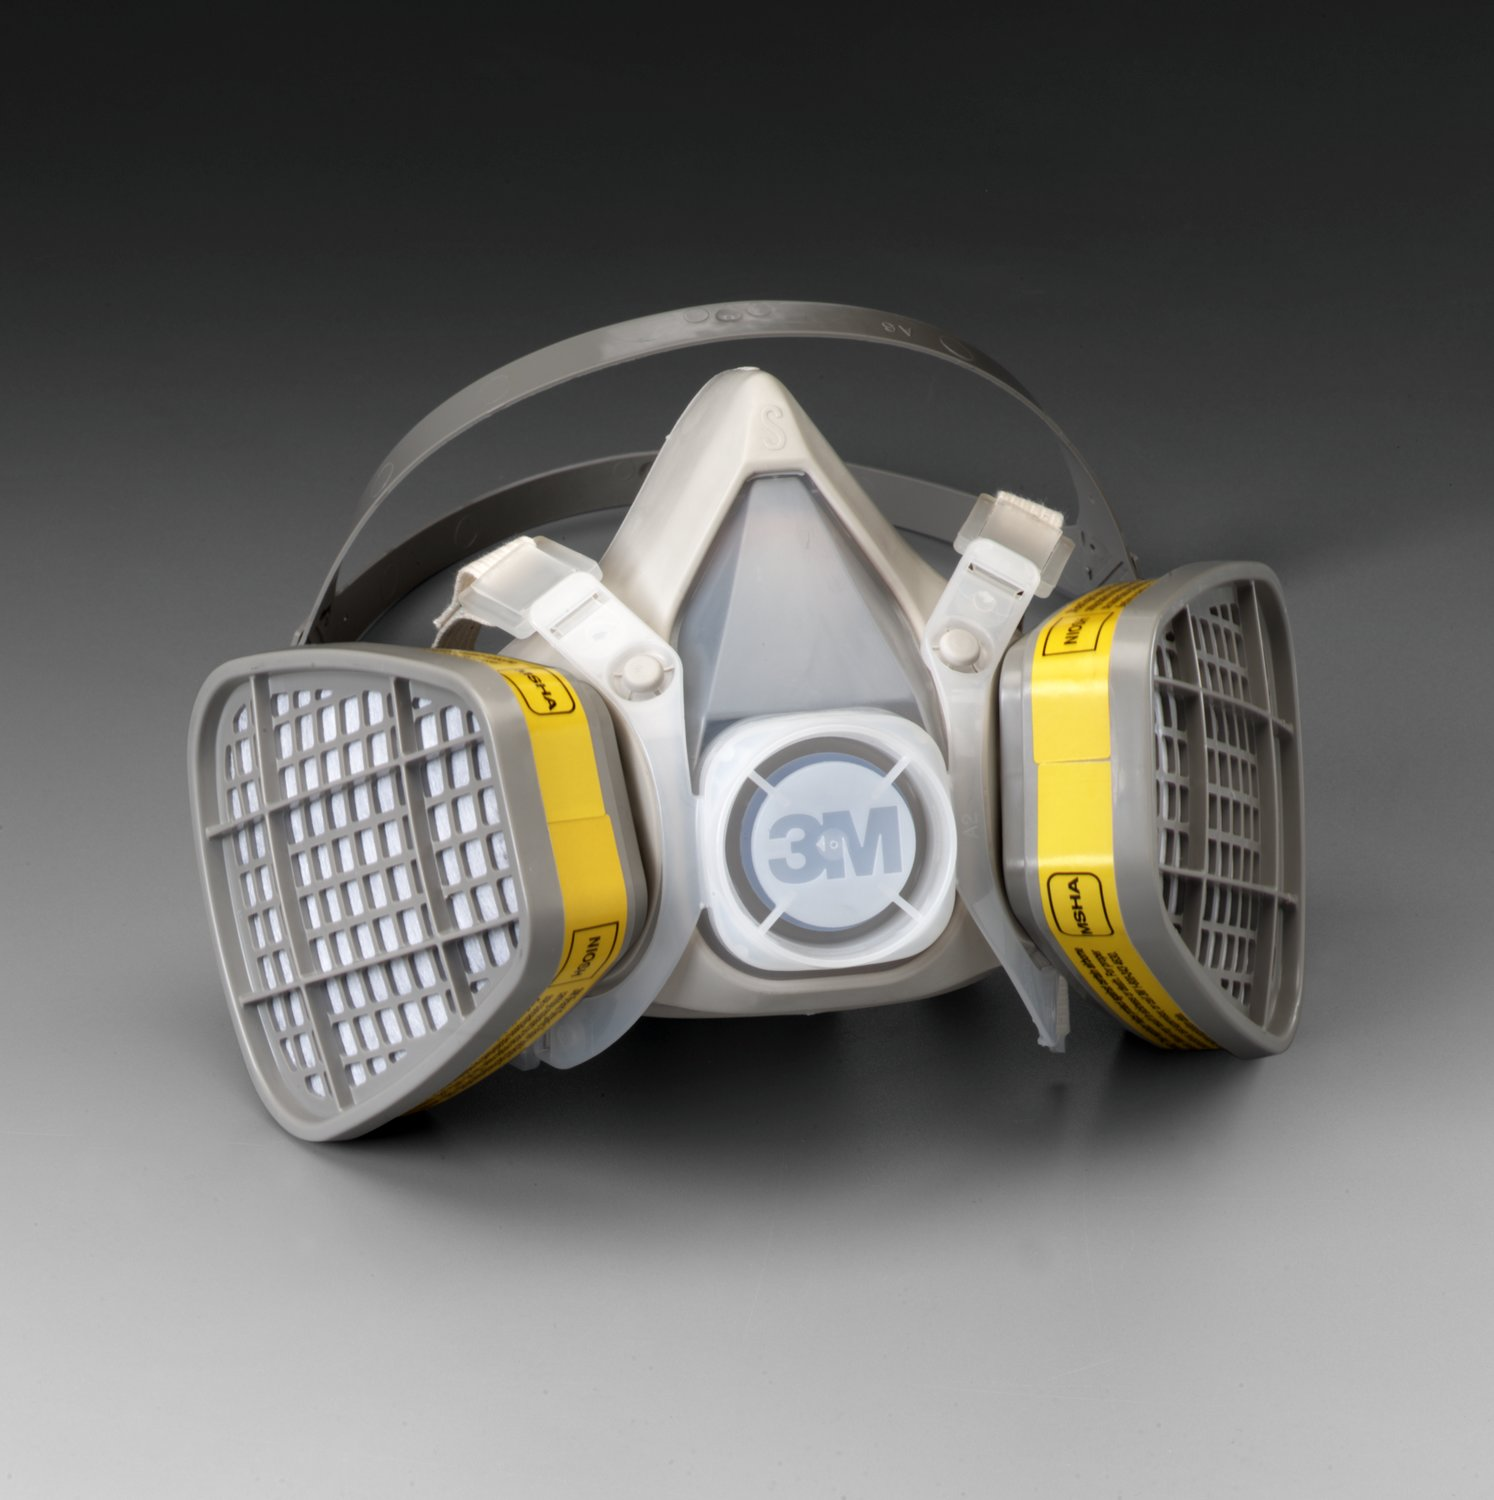 3M Medium Black Thermoplastic Elastomer Half Mask 5000 Series Disposable Air Purifying Respirator With 4 Point Harness